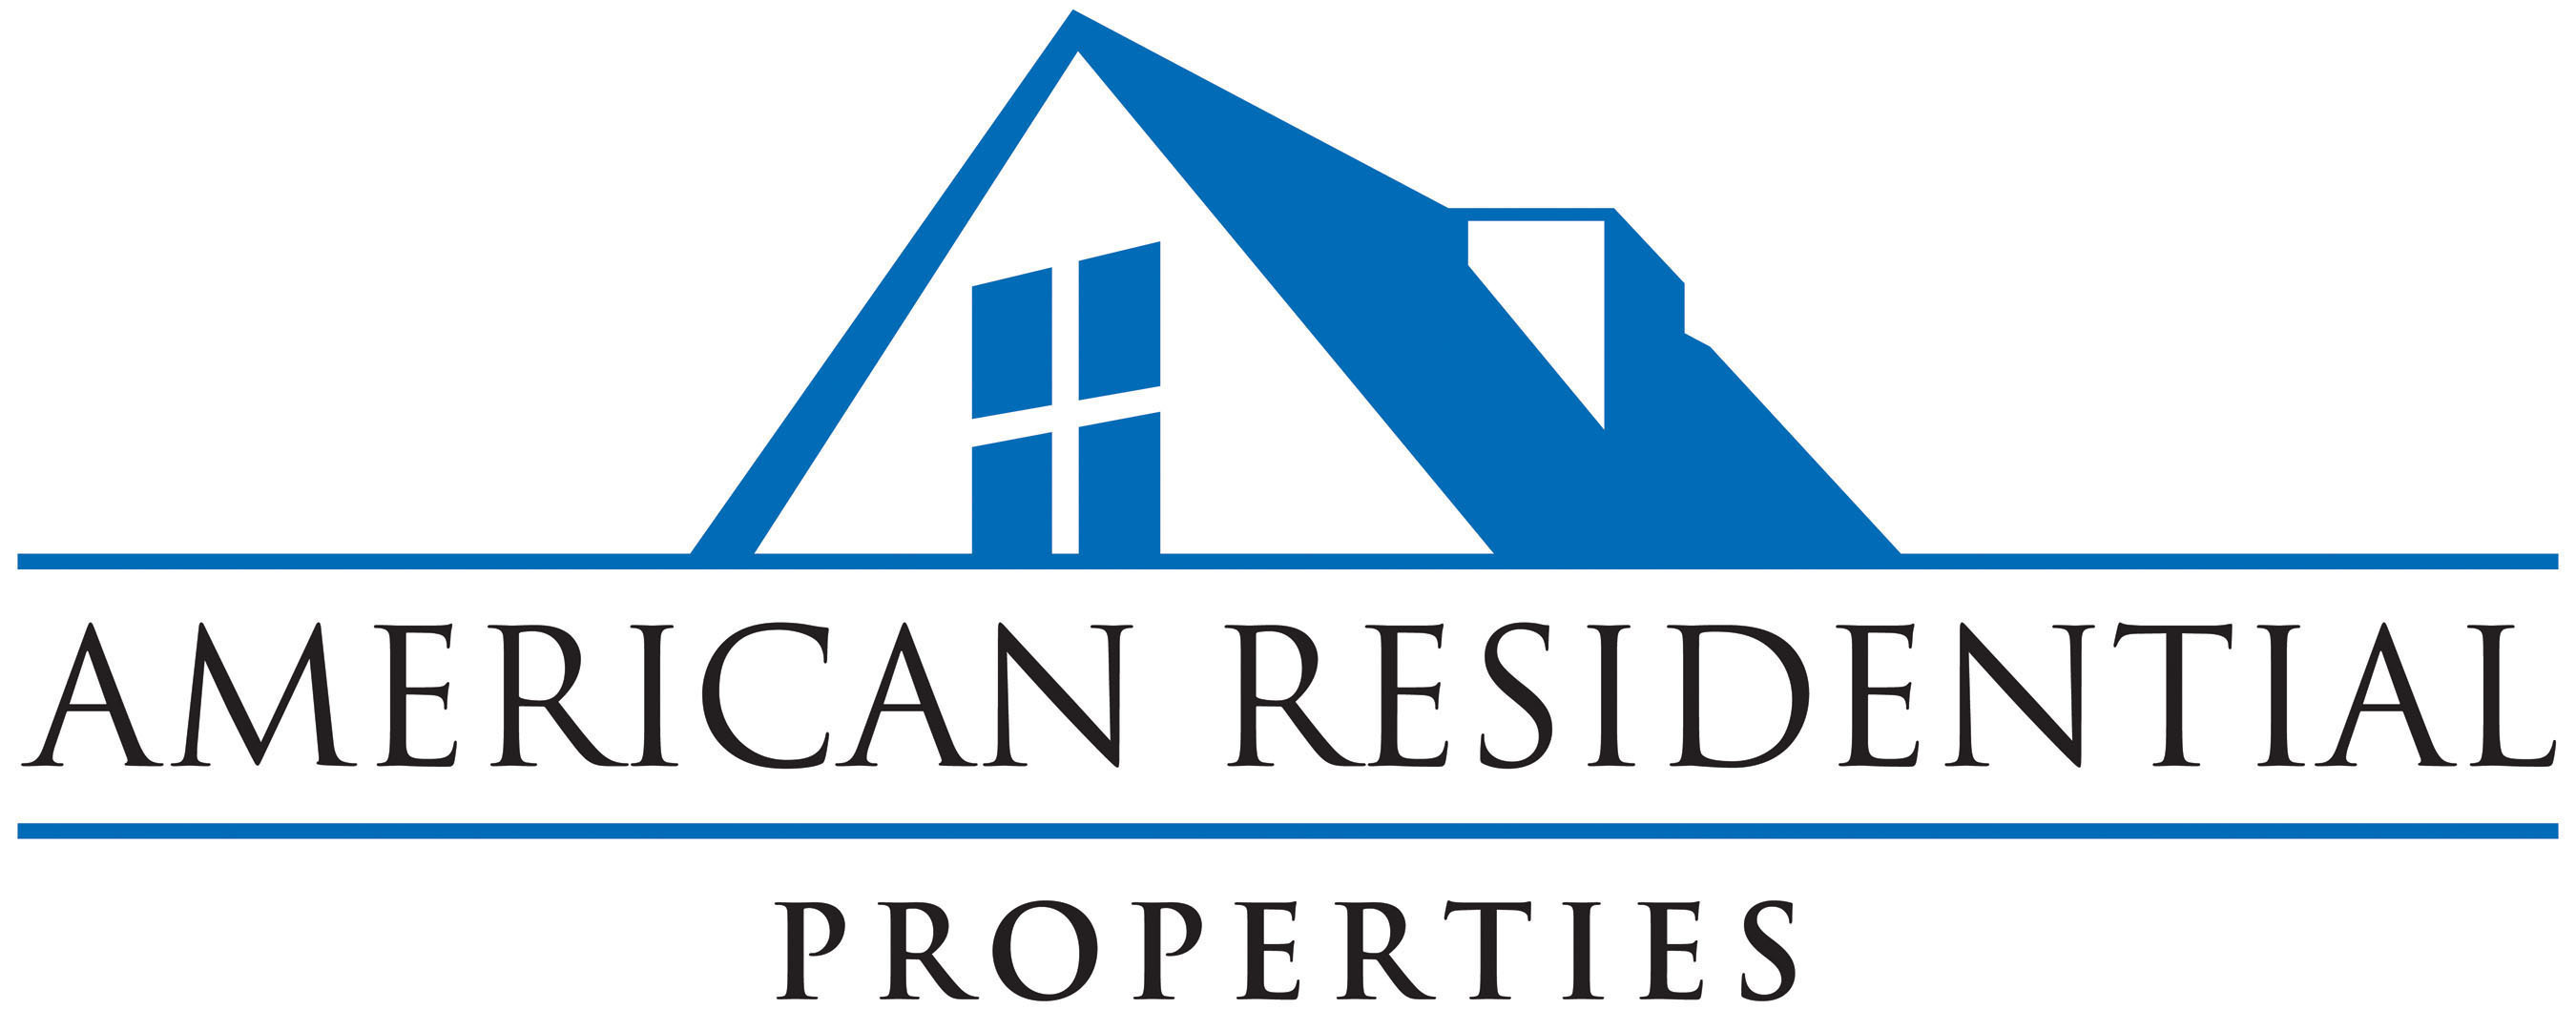 American Residential Properties Announces Results of a Special Meeting of Stockholders